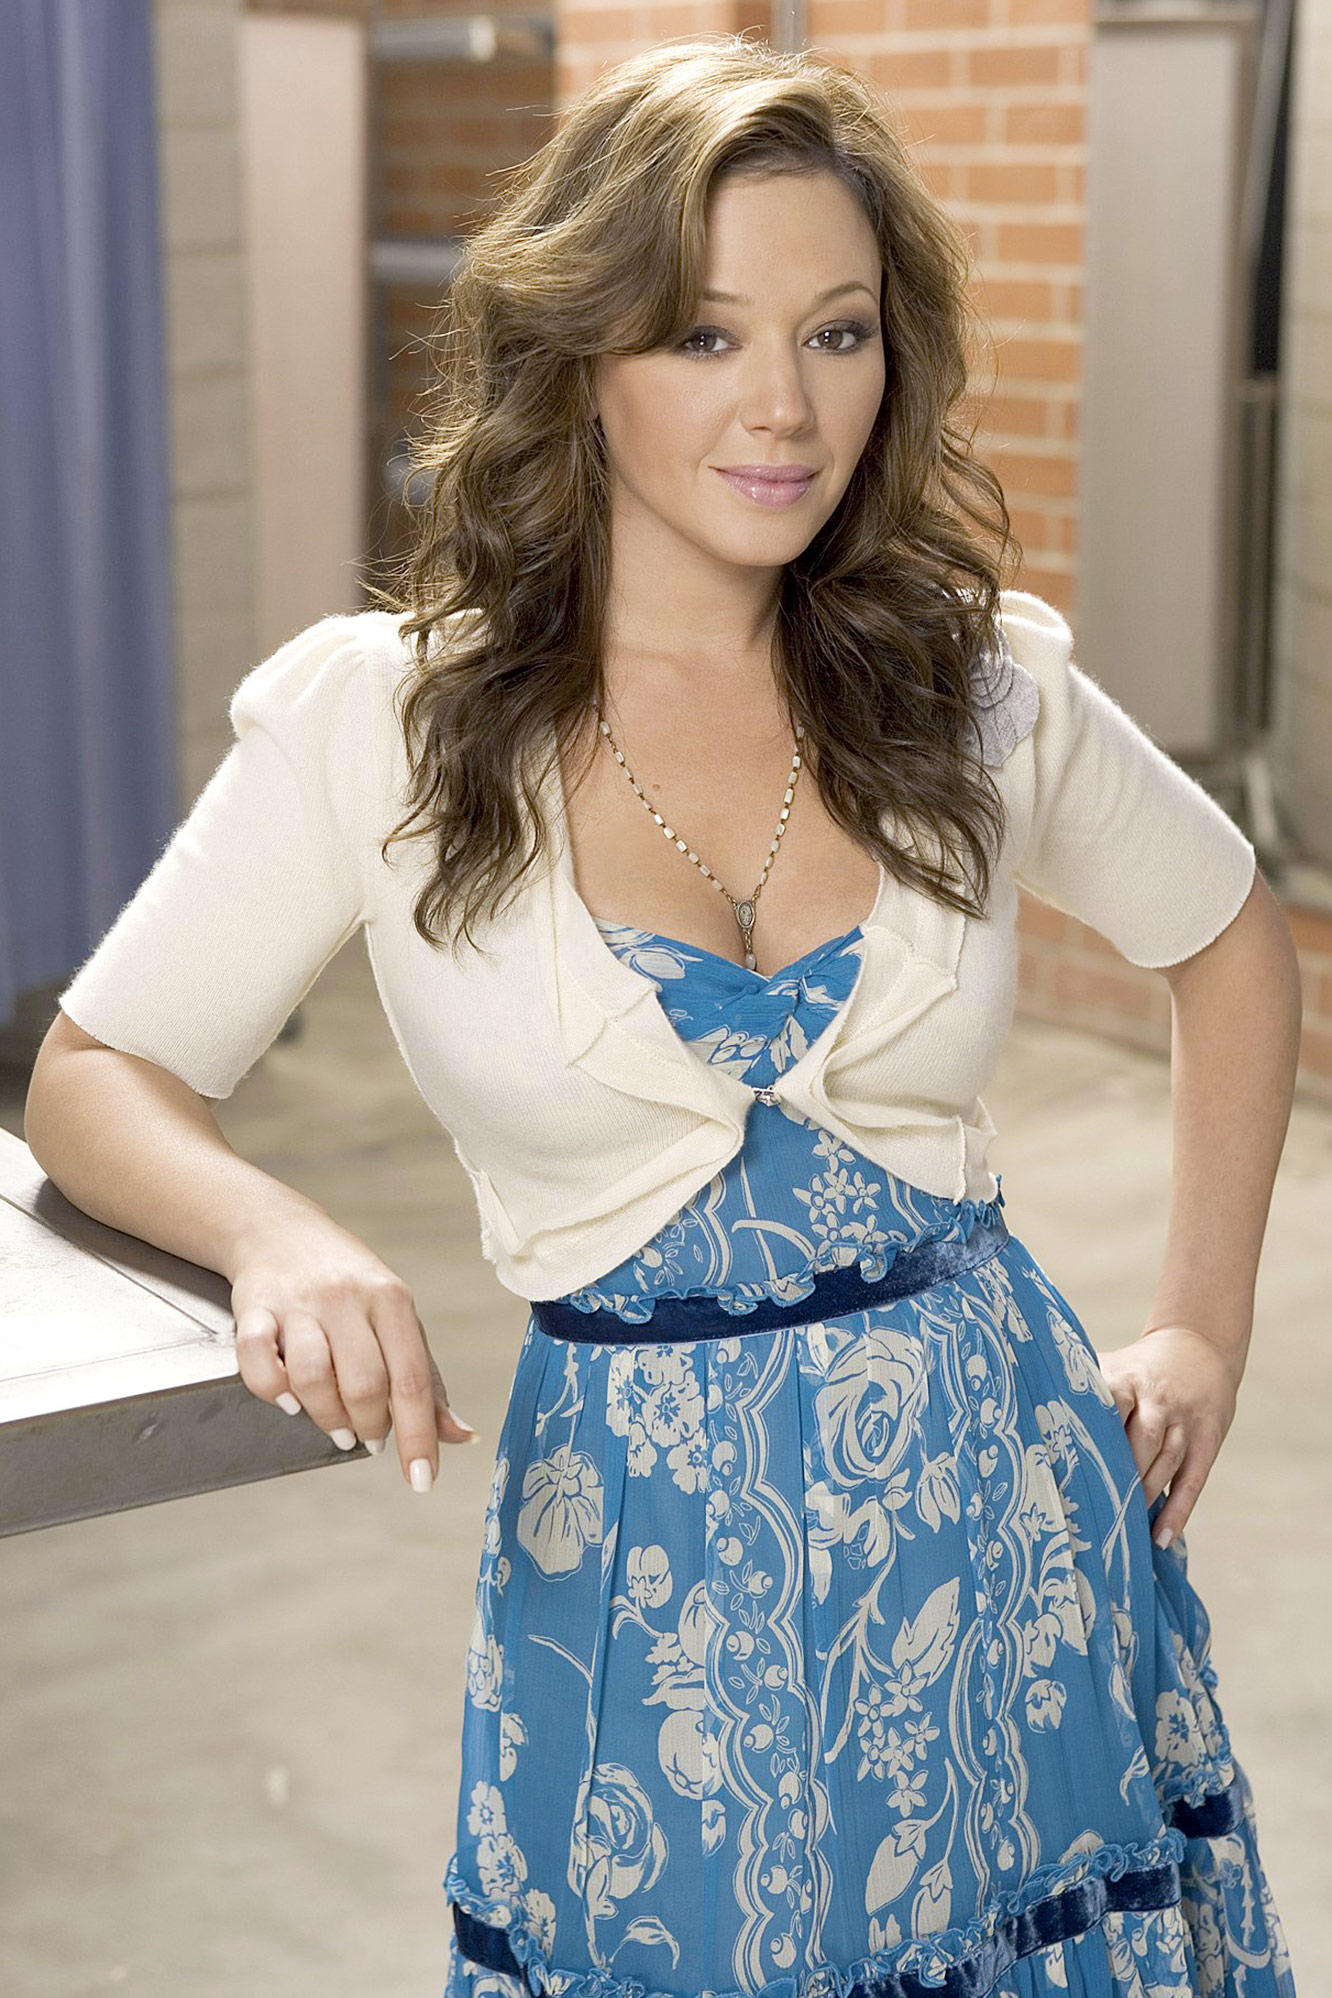 leah remini hot photos and wallpapers